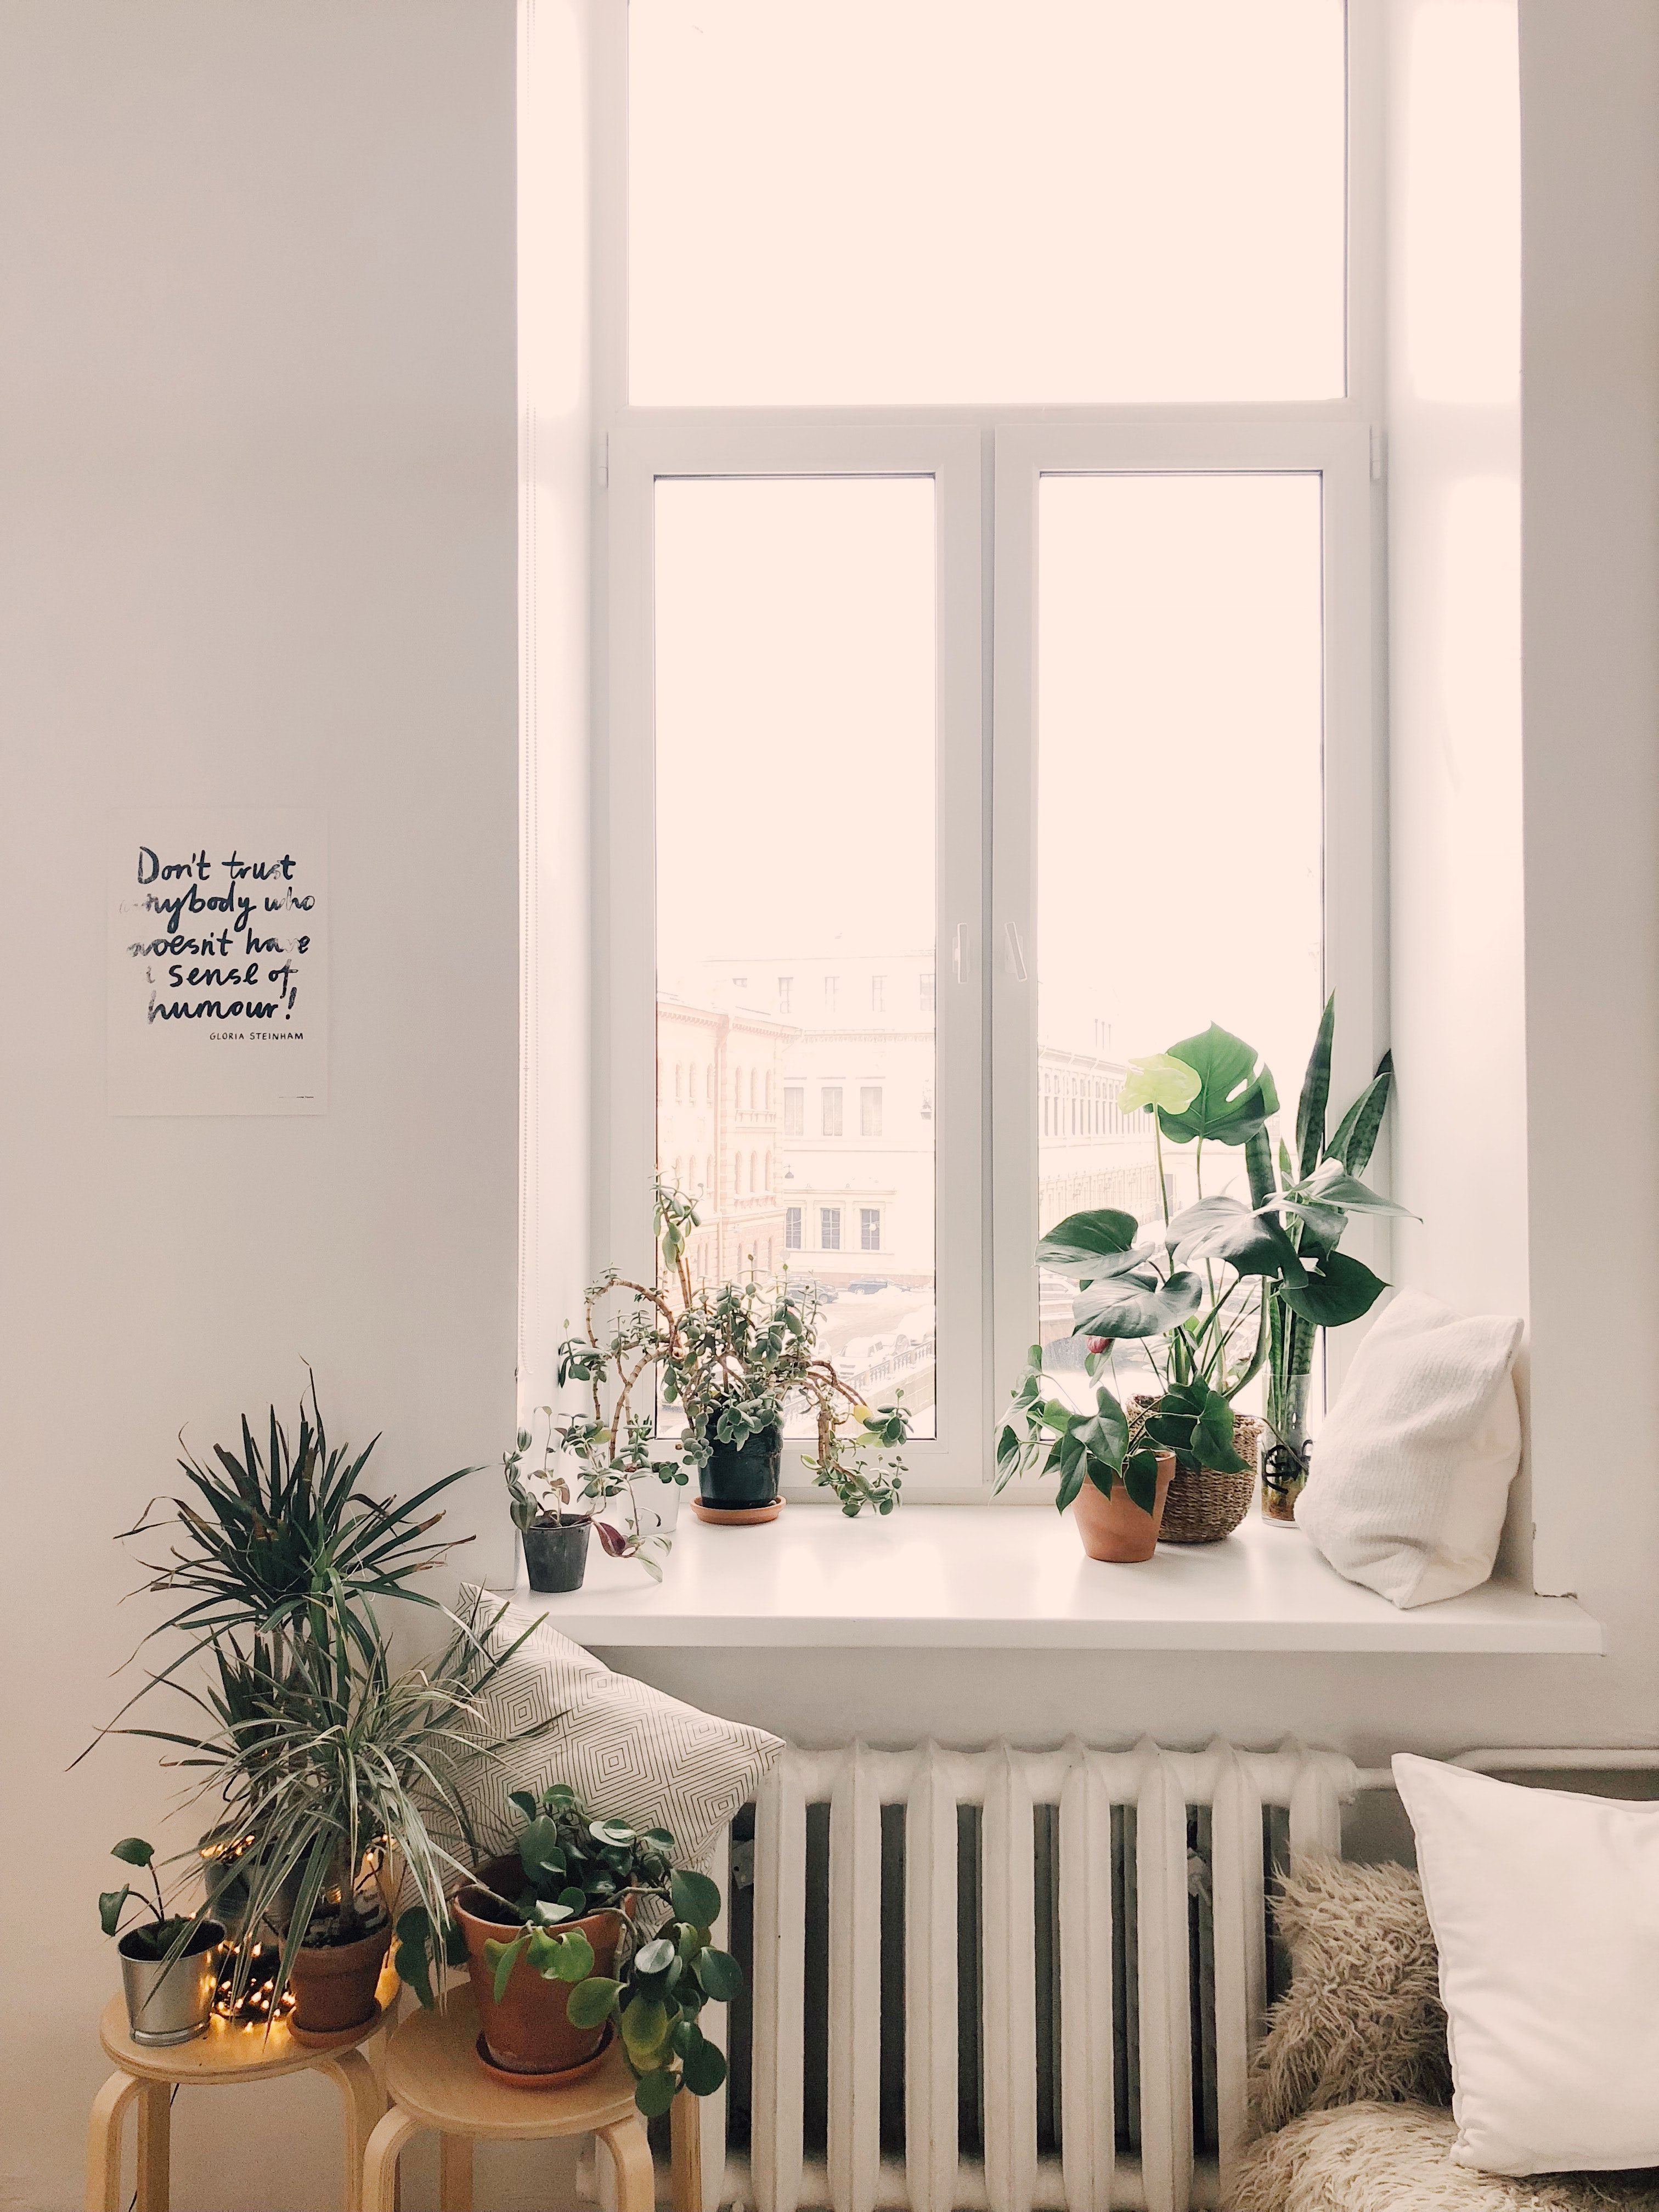 The Beginners Guide To Setting Up An Indoor Garden